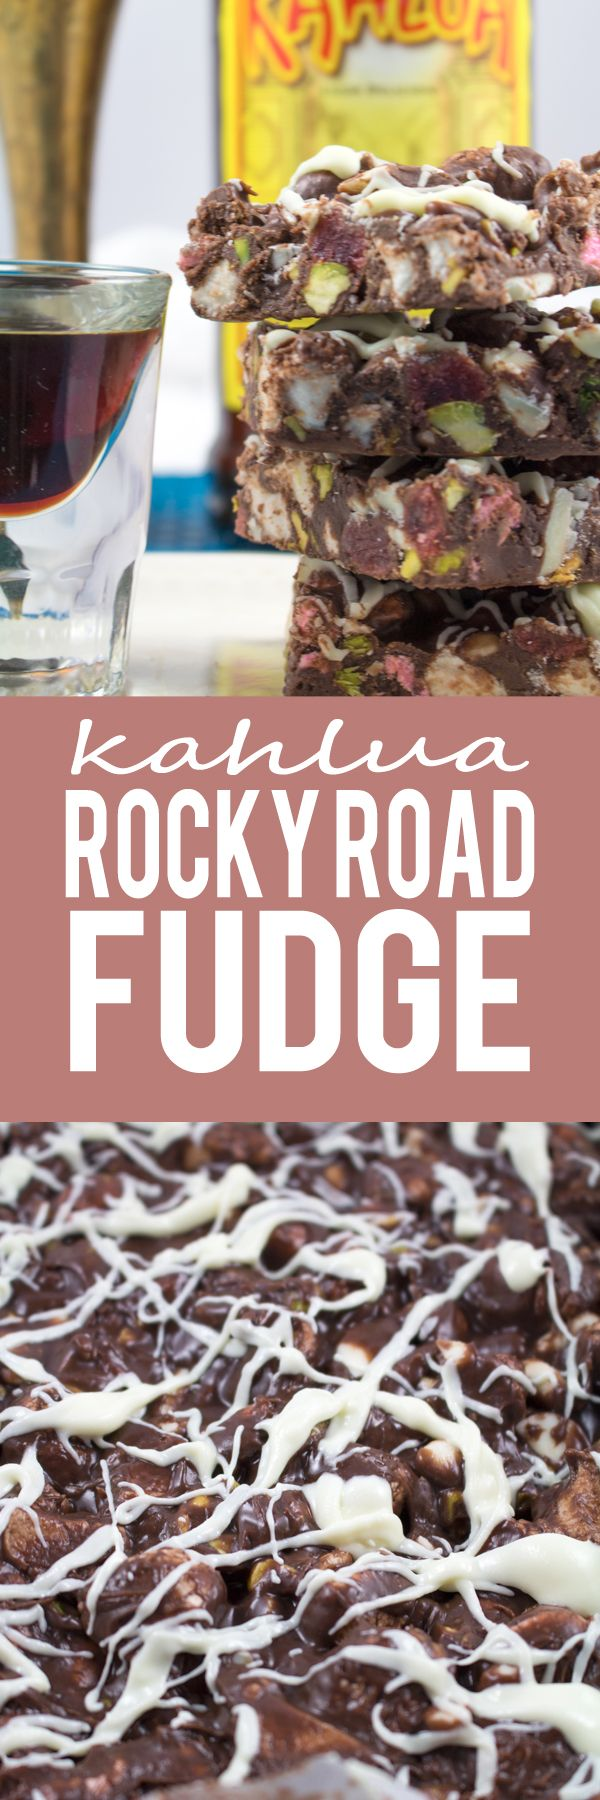 Kahlua Rocky Road Fudge - A chocoholics dream! Chocolate fudge coating with marshmallows, sugar dusted glazed strawberries, pistachios, white chocolate and a splash of Kahlua!! MUST.MAKE.NOW